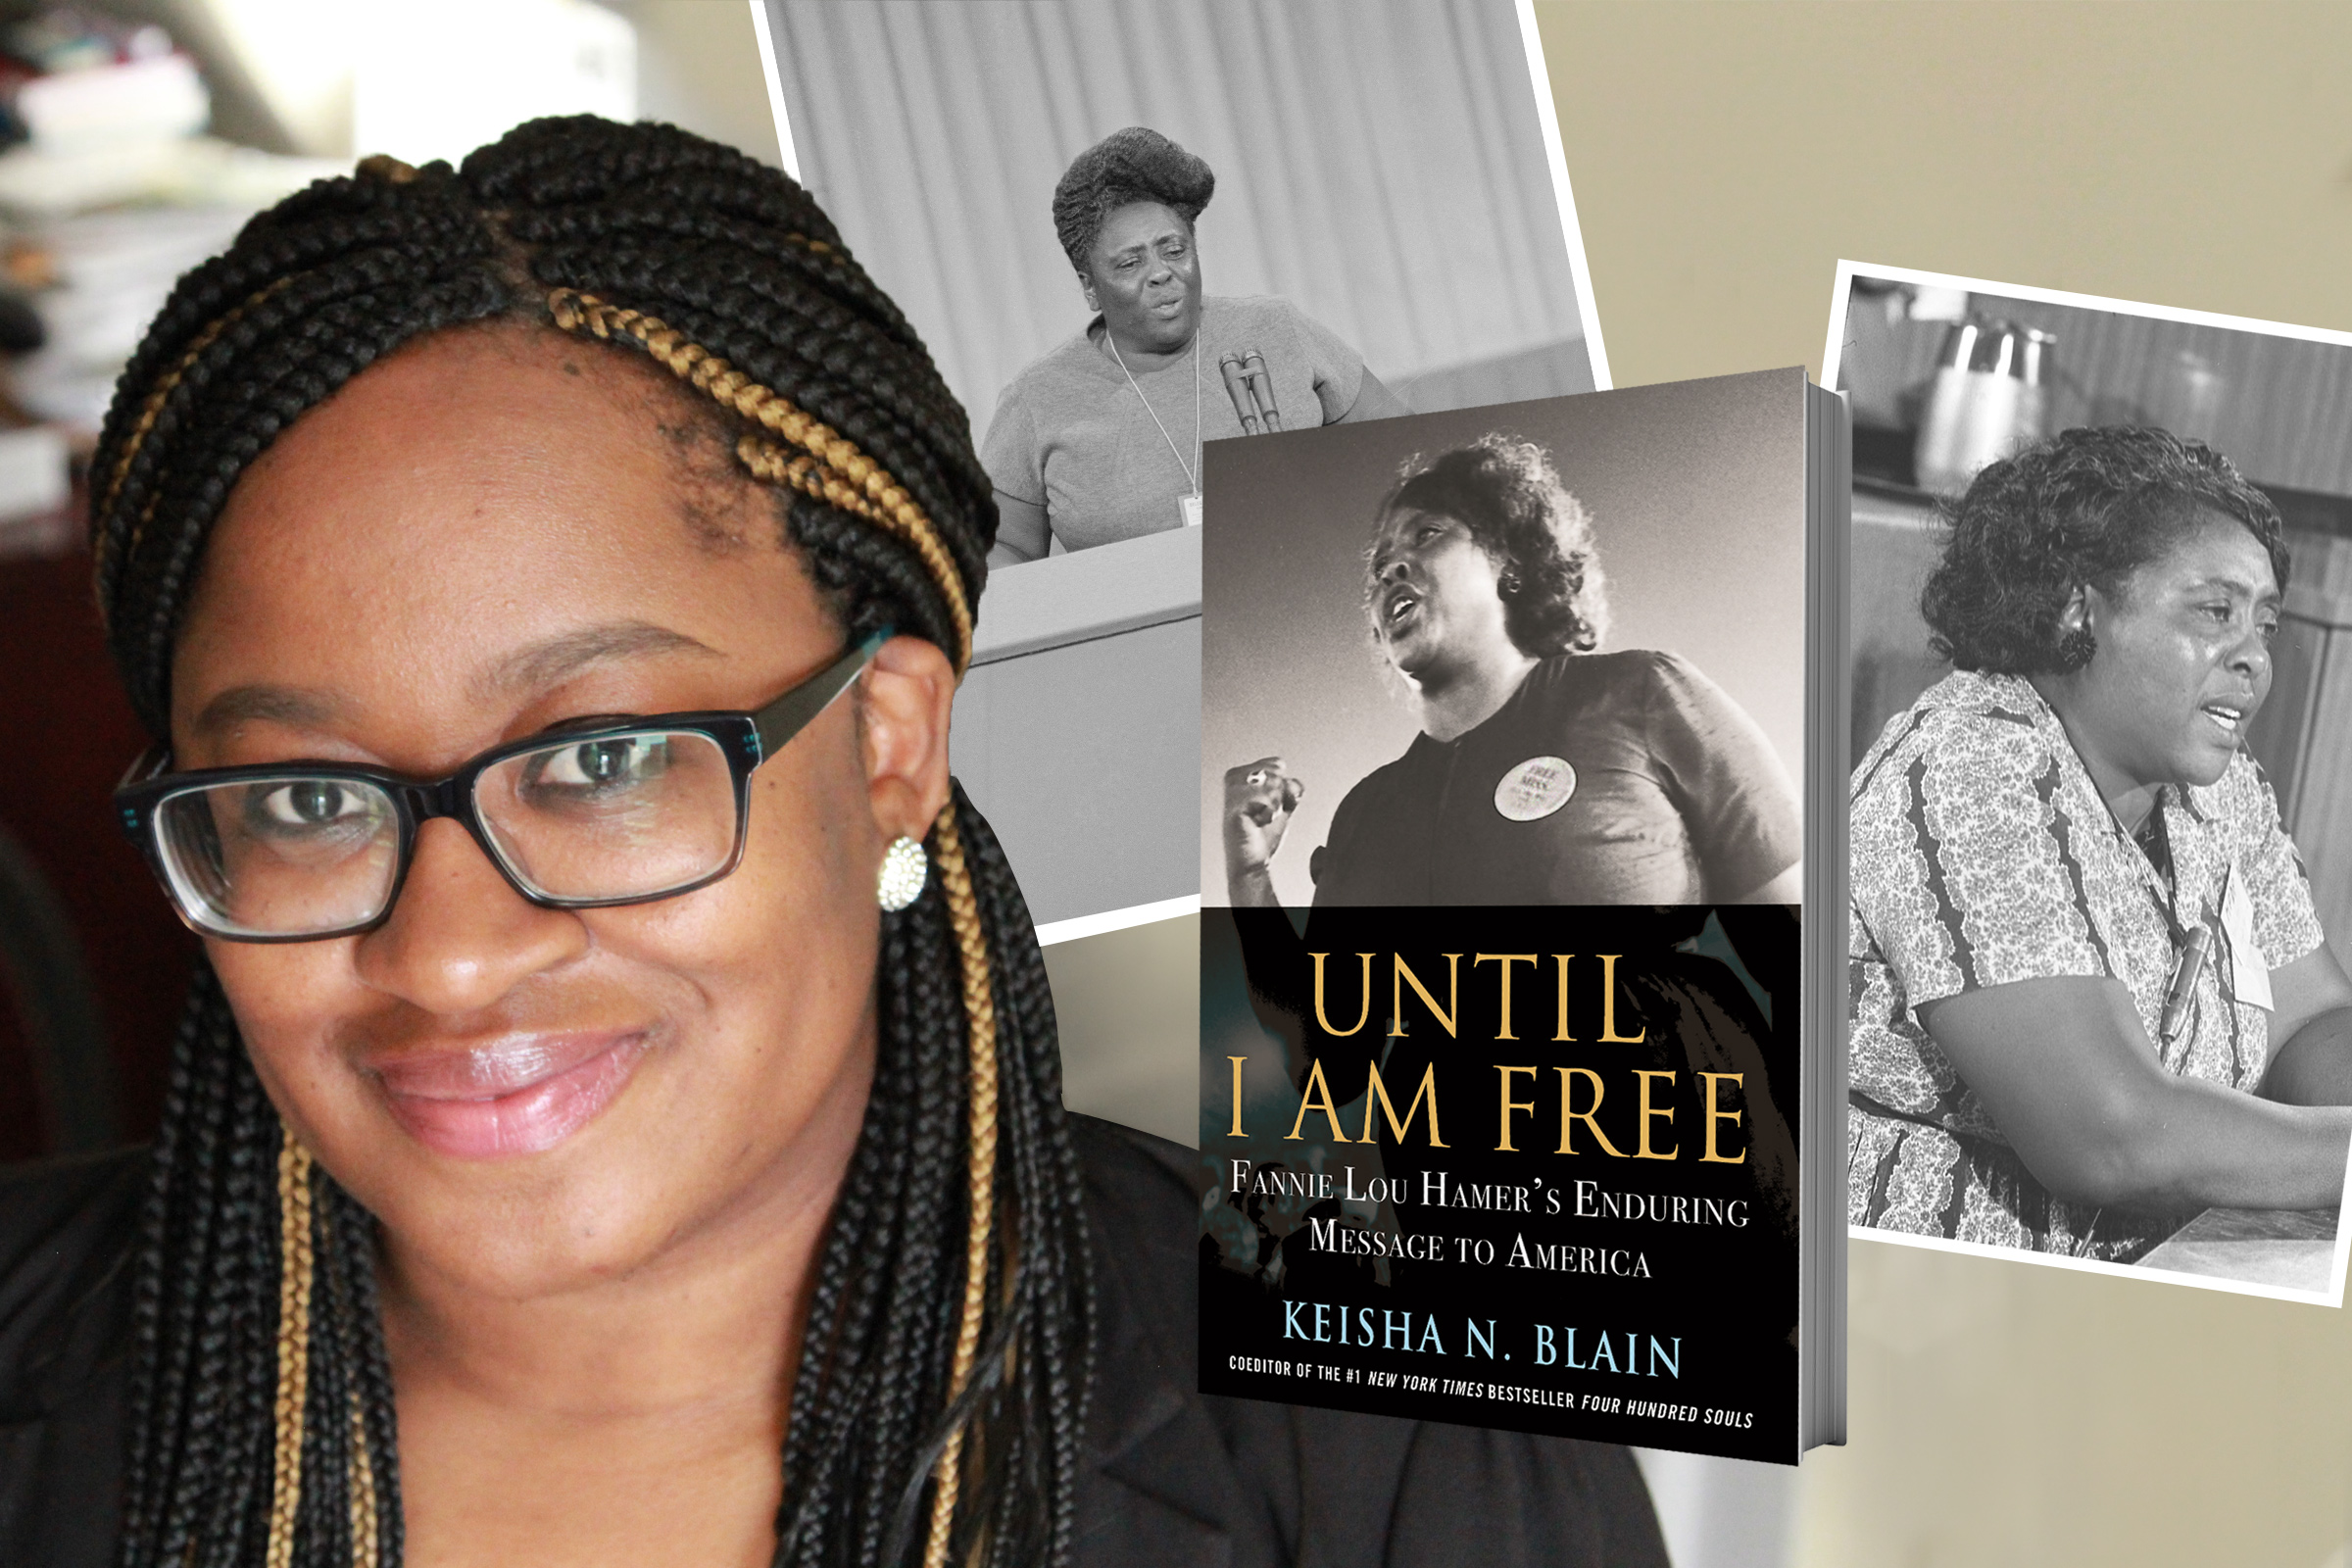 Author Keisha N. Blain is pictured, she is a Black woman with braids wearing black-rimmed glasses. Next to her headshot are three other images, two that picture activist Fannie Lou Hamer, a Black woman, speaking. The final image is of Blain's book cover.